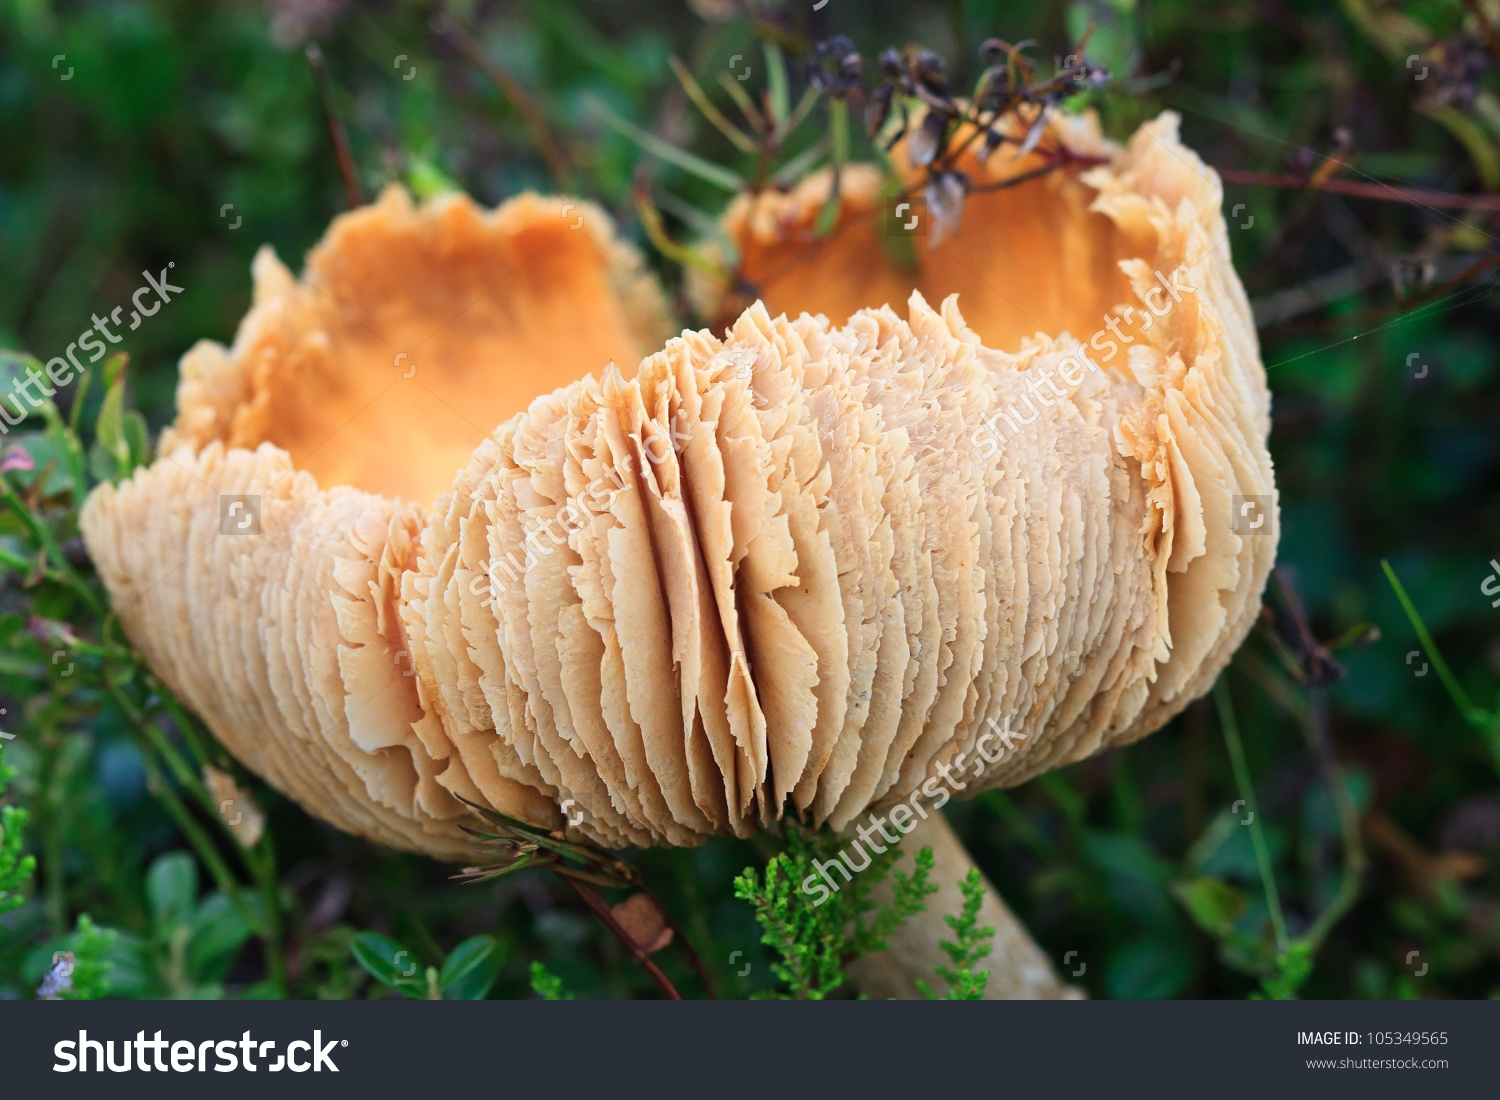 Old Gypsy Mushroom (Cortinarius Caperatus) Stock Photo 105349565.